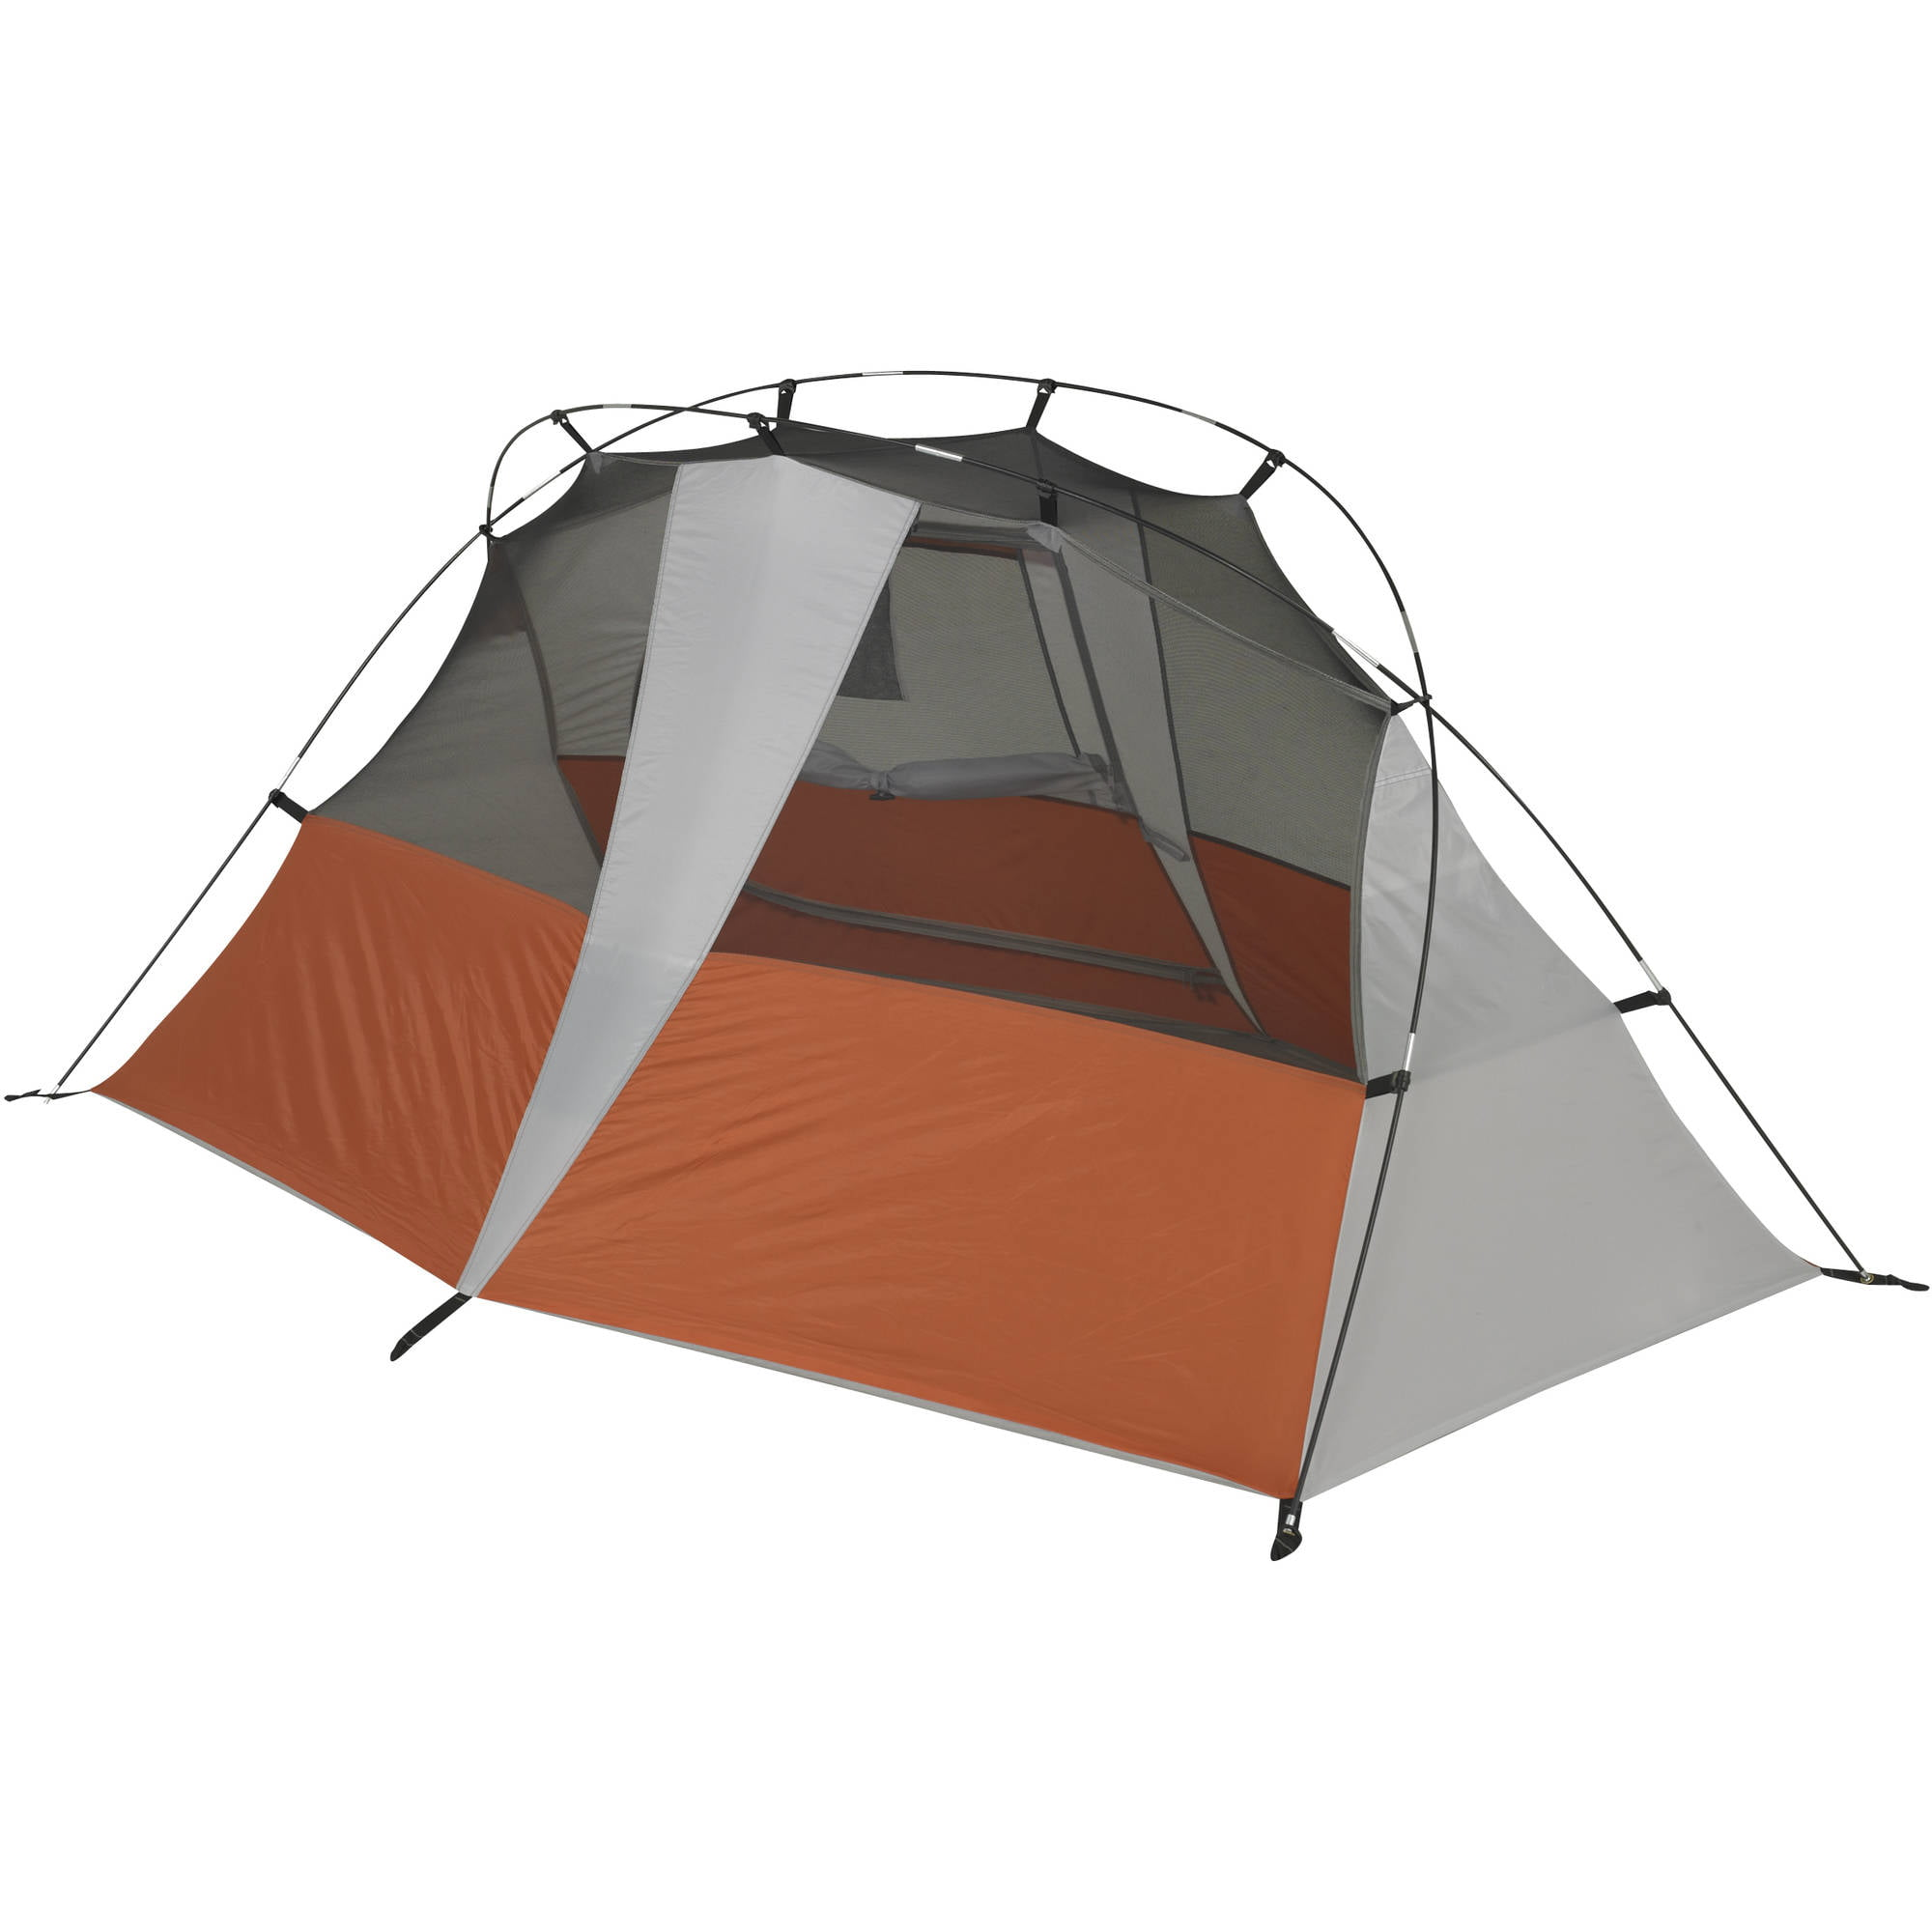 sc 1 st  Walmart : ozark backpacking tent - memphite.com